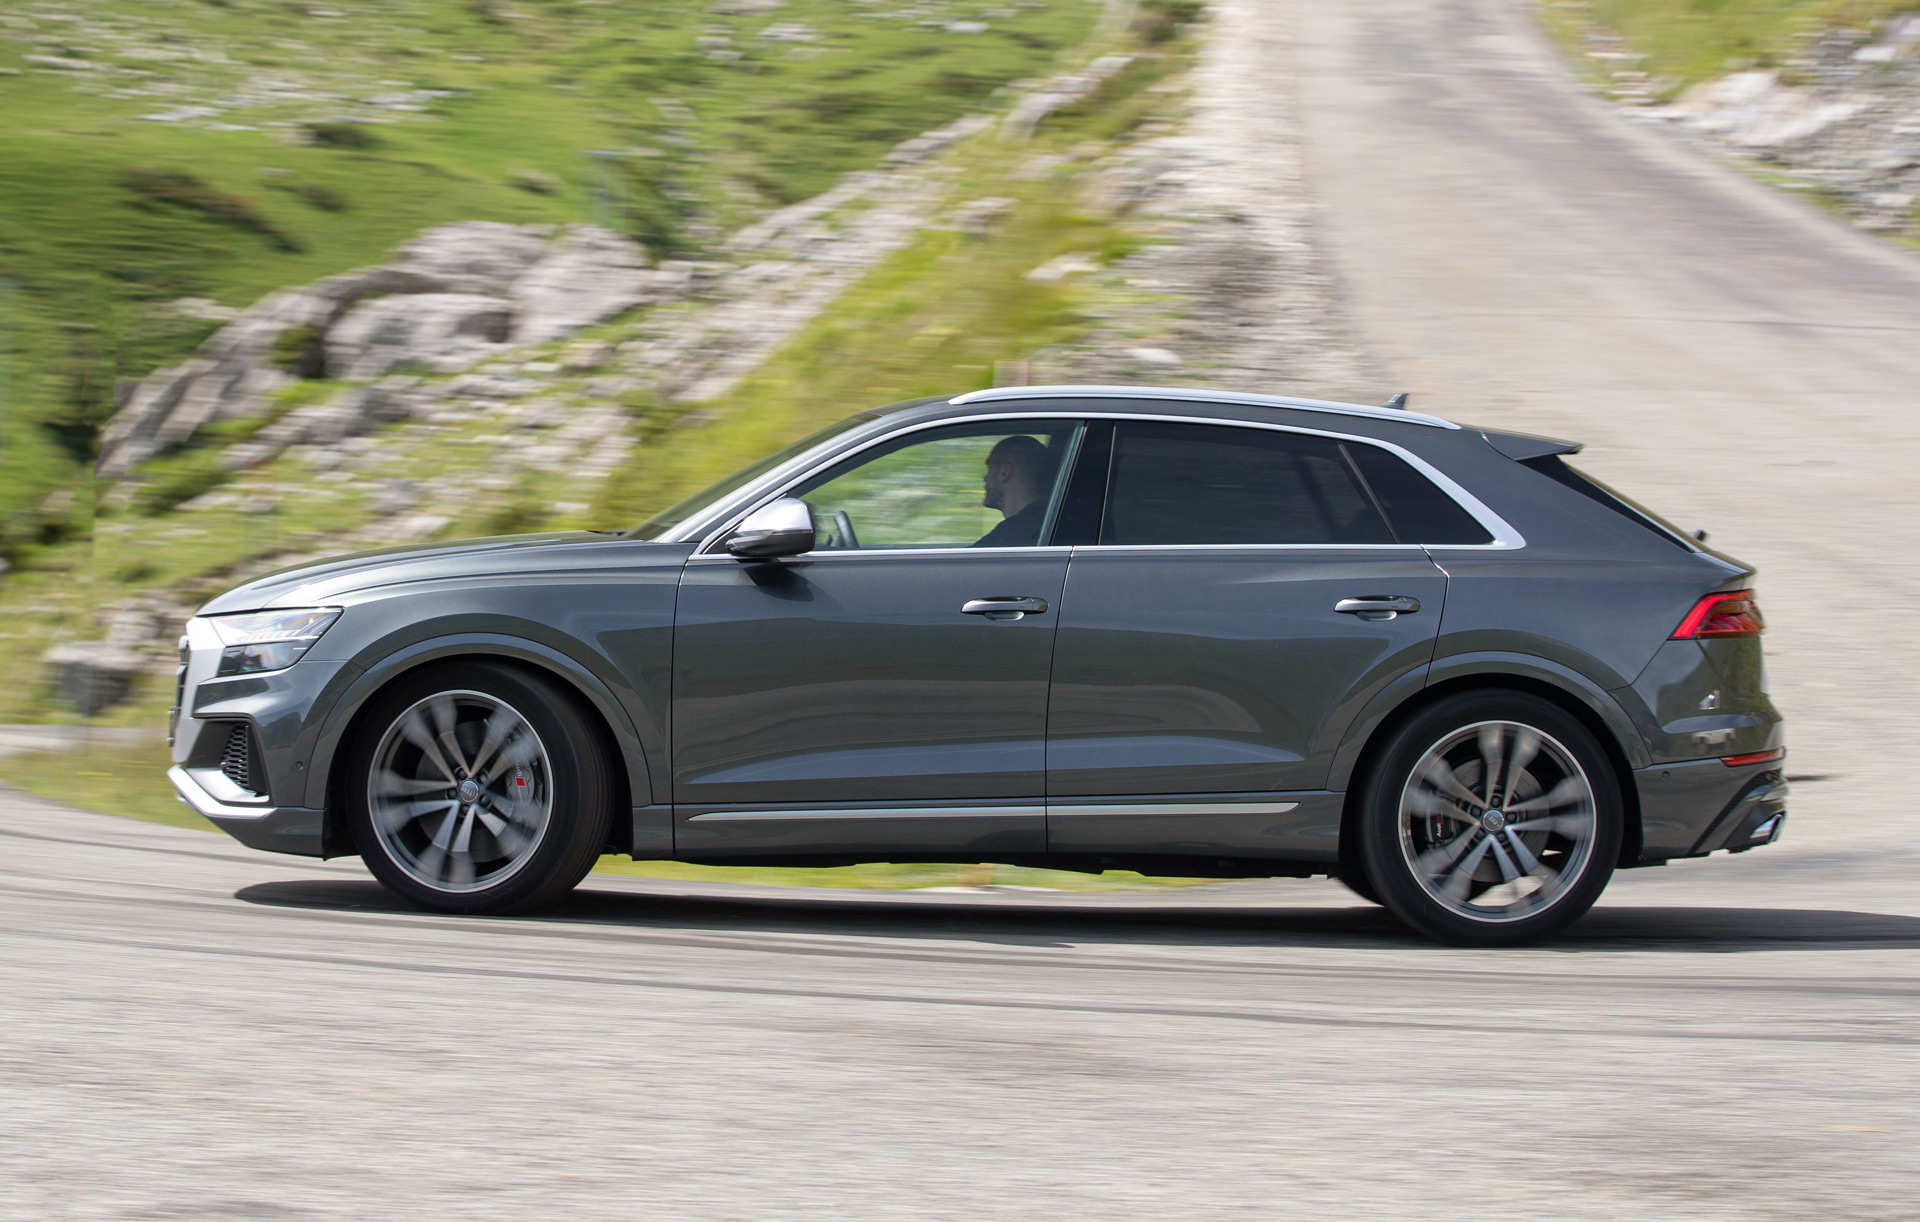 2020 audi sq8 2021 jaguar fpace 2022 vw arteon shooting